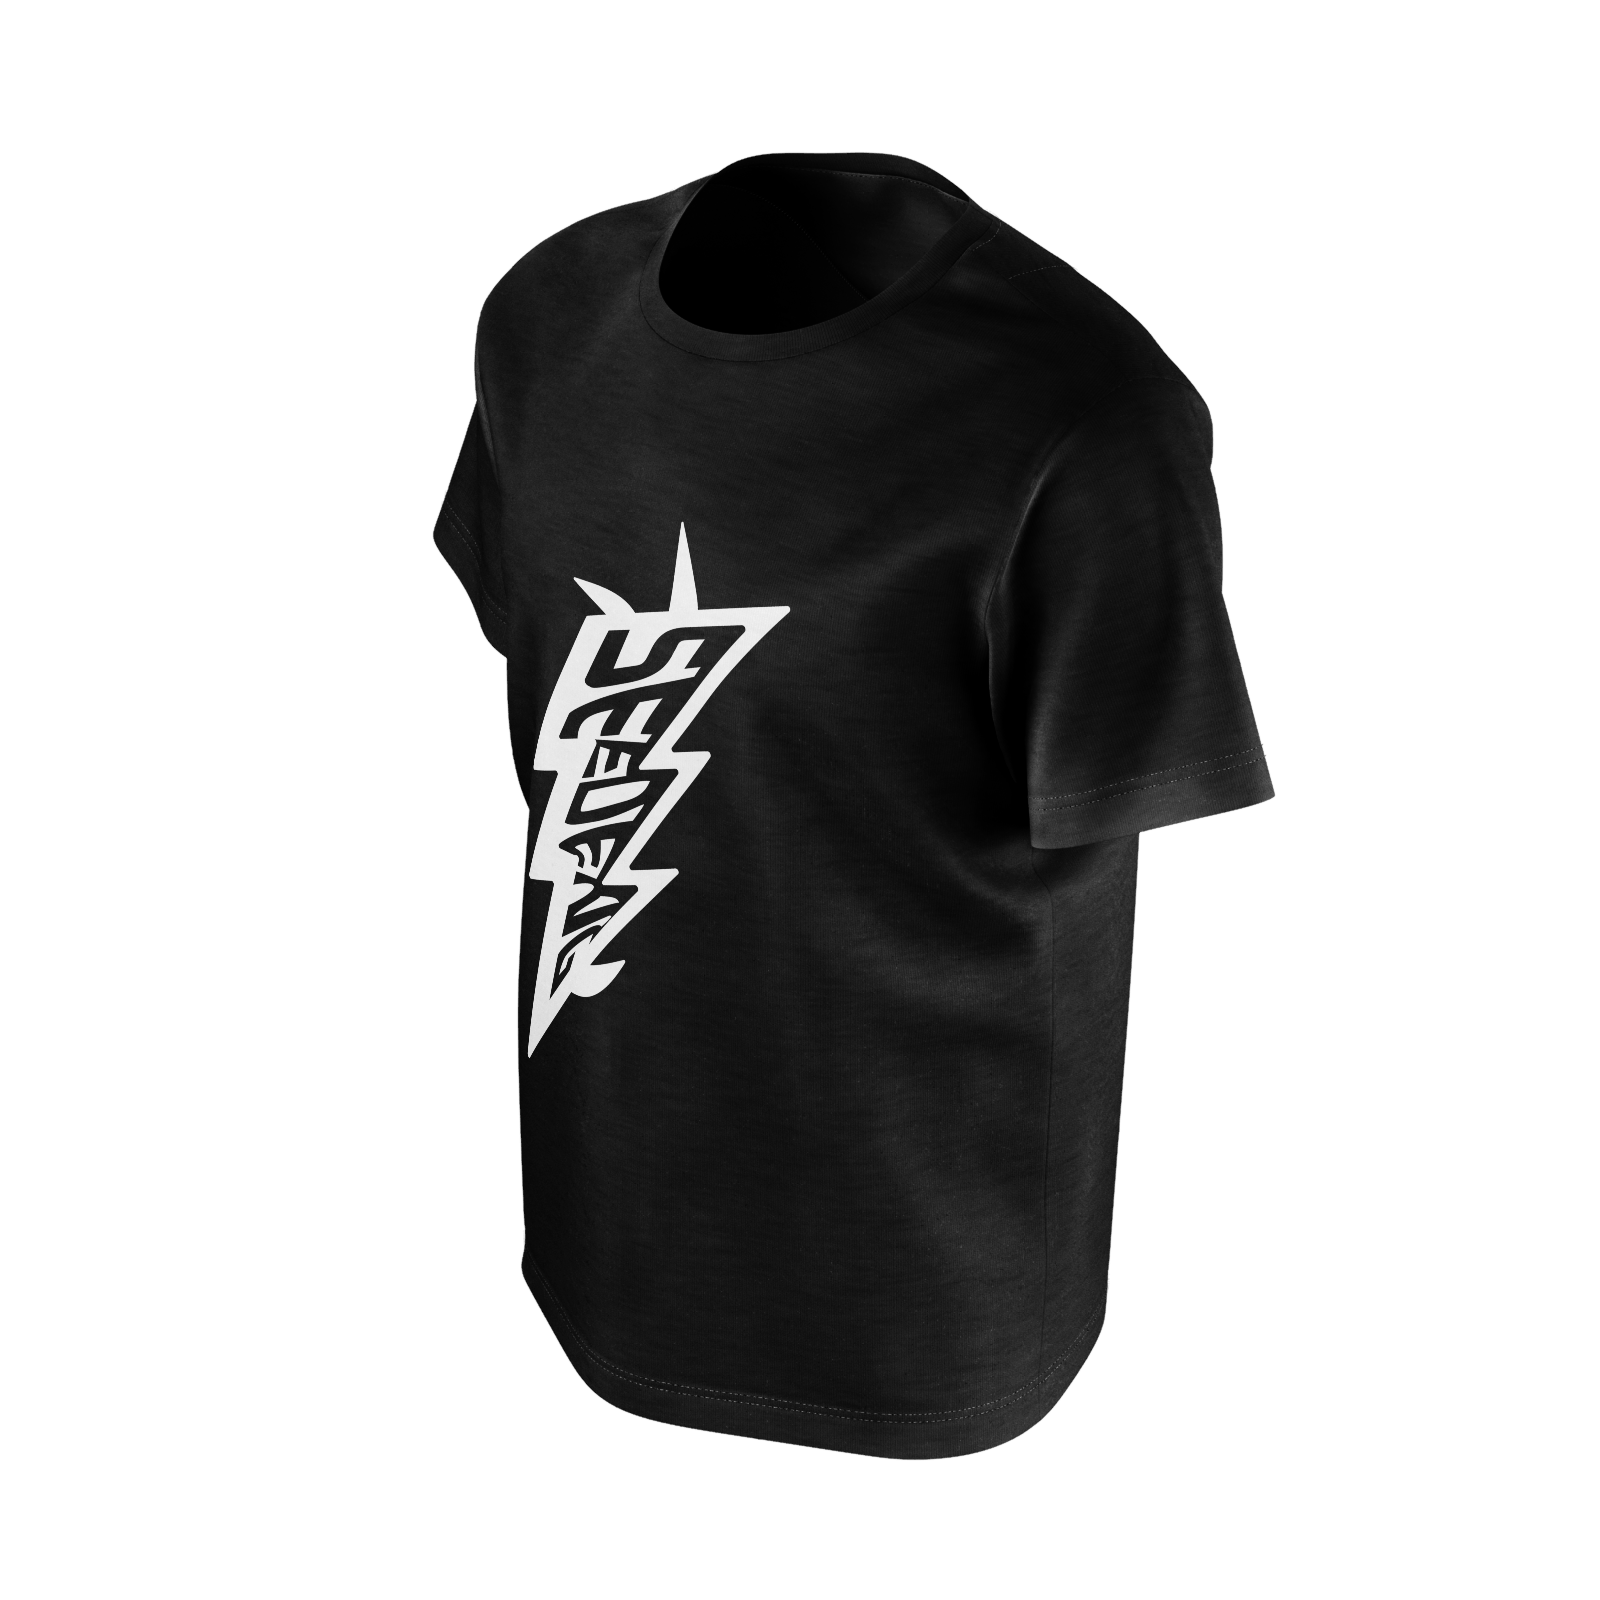 Seedeng B&W T-Shirt (Kids)